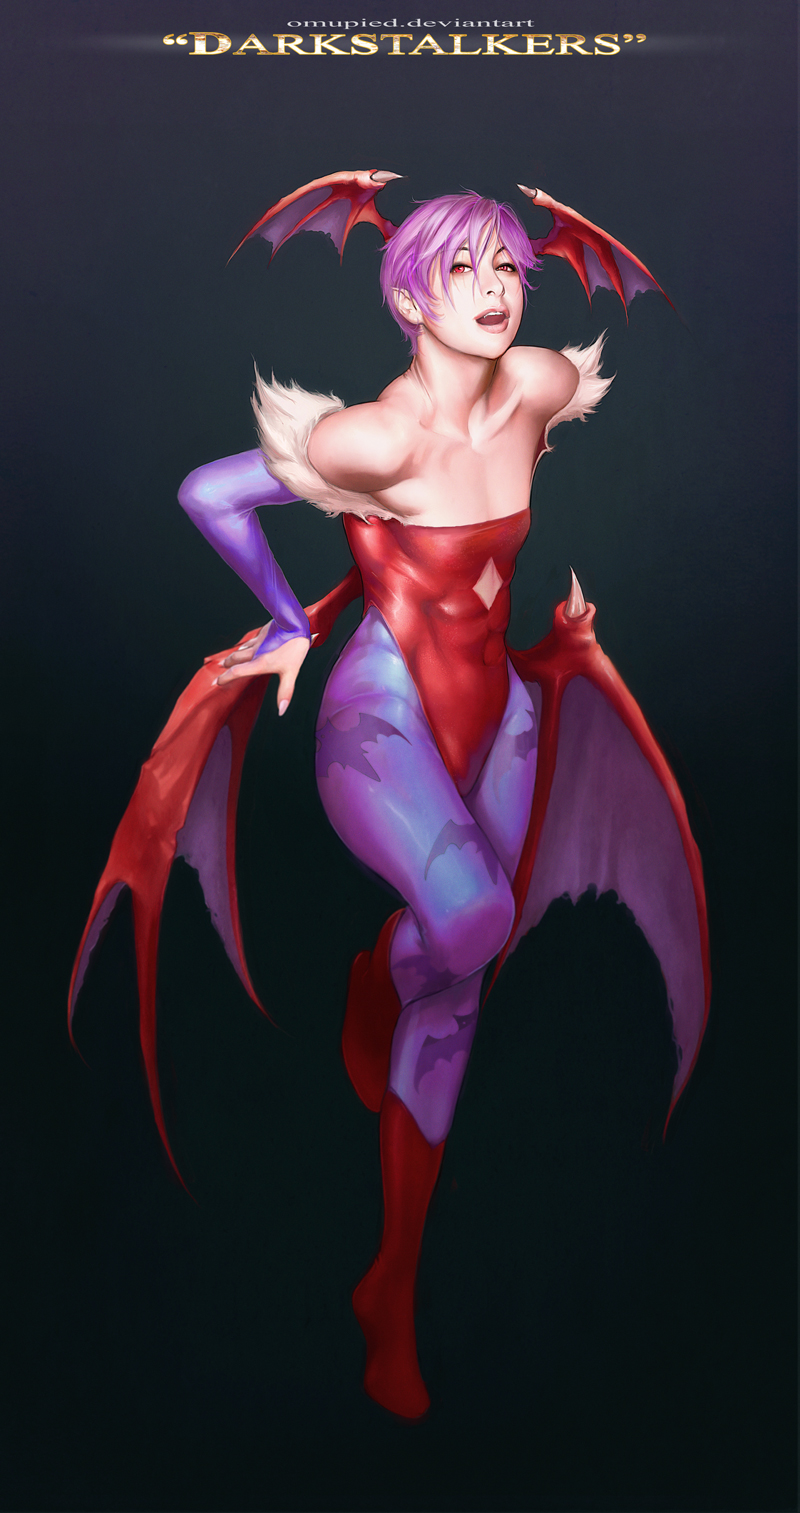 Lilith Darkstalkers FanArt by omupied